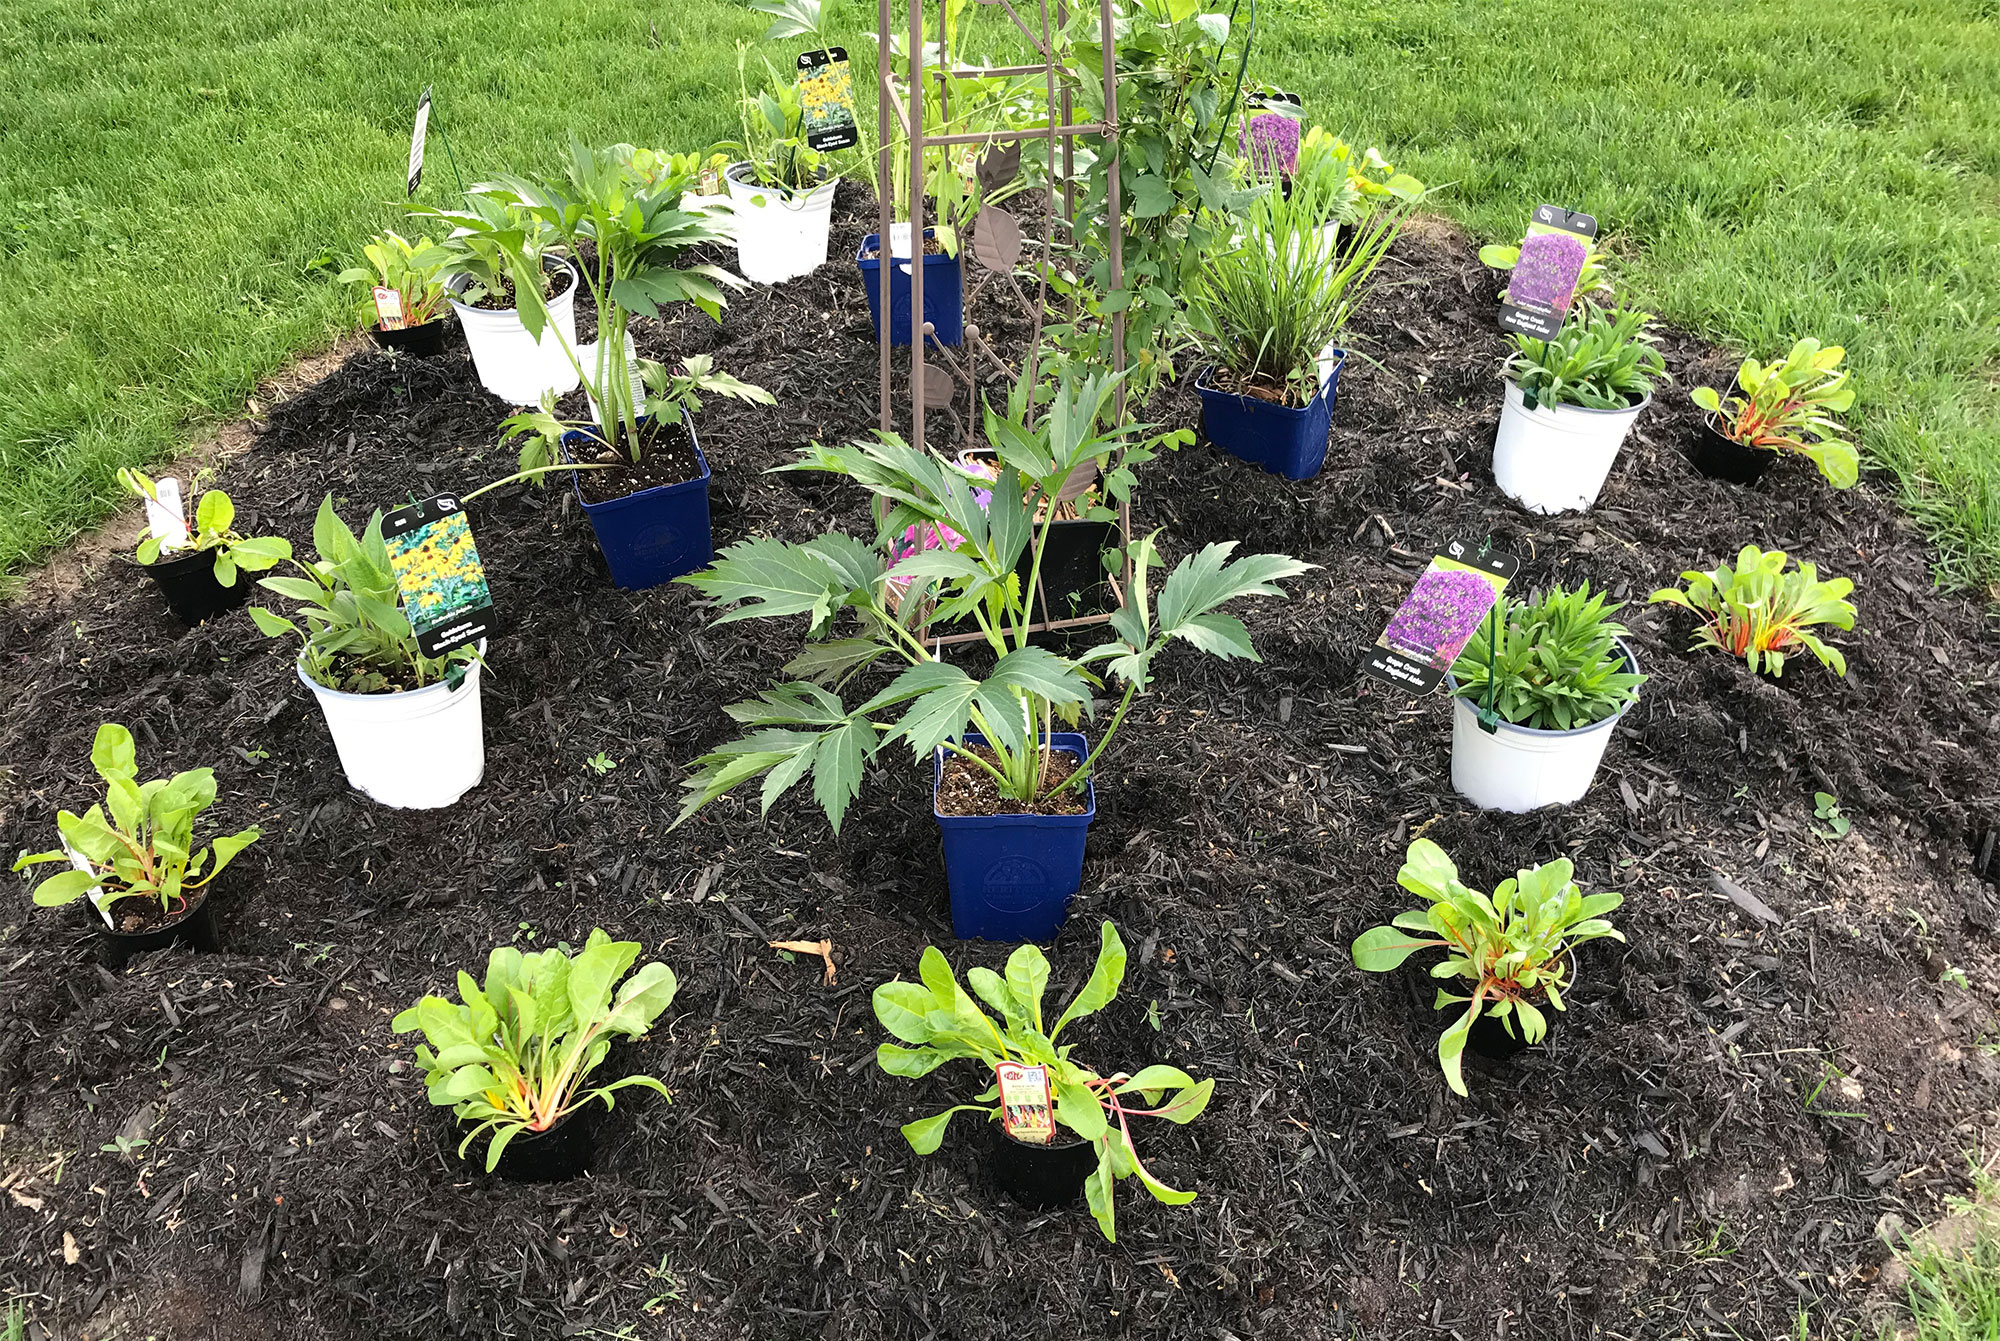 Potted plants positioned in newly dug garden bed.